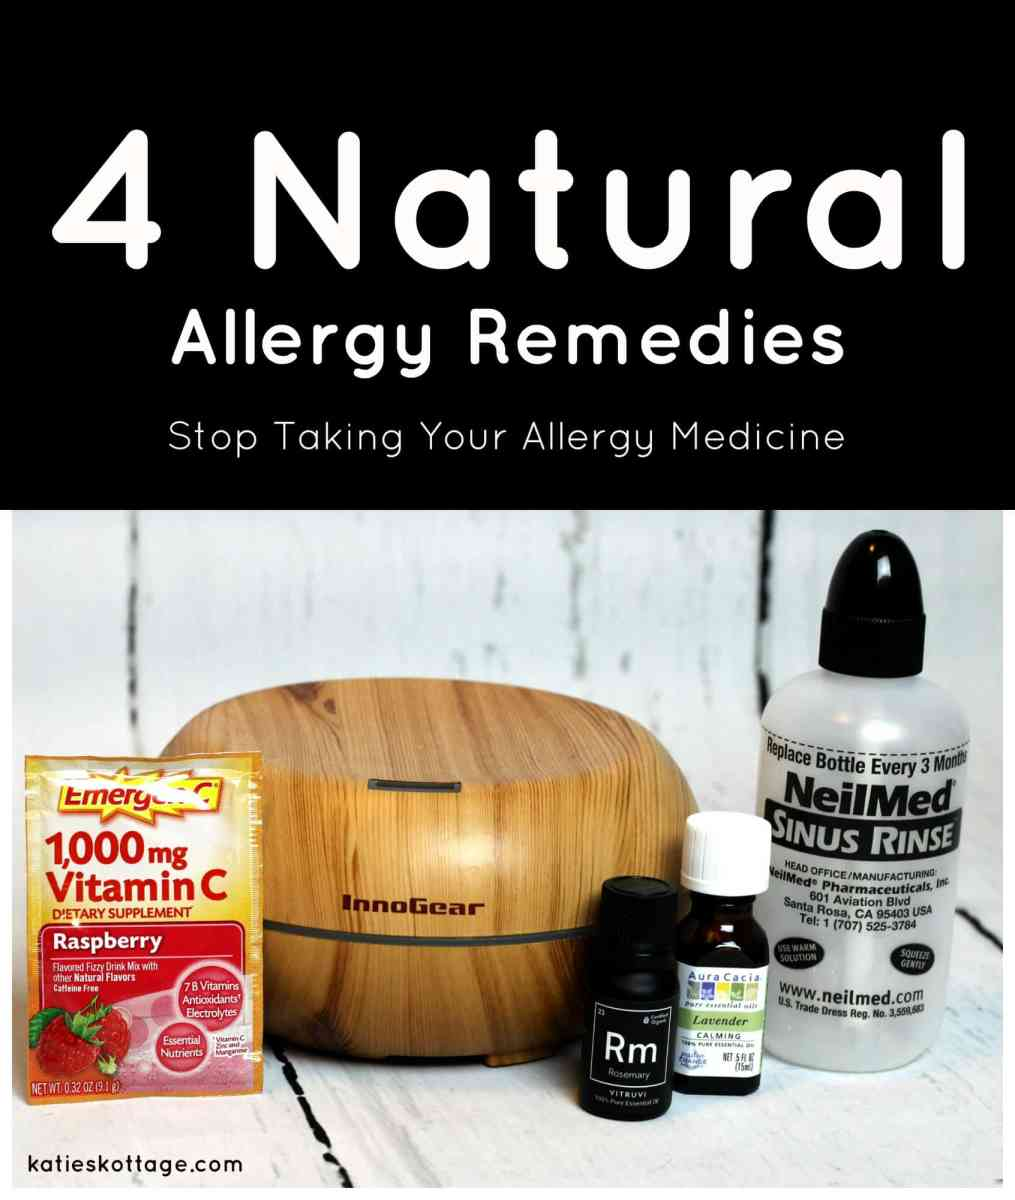 4 Natural Allergy Remedies